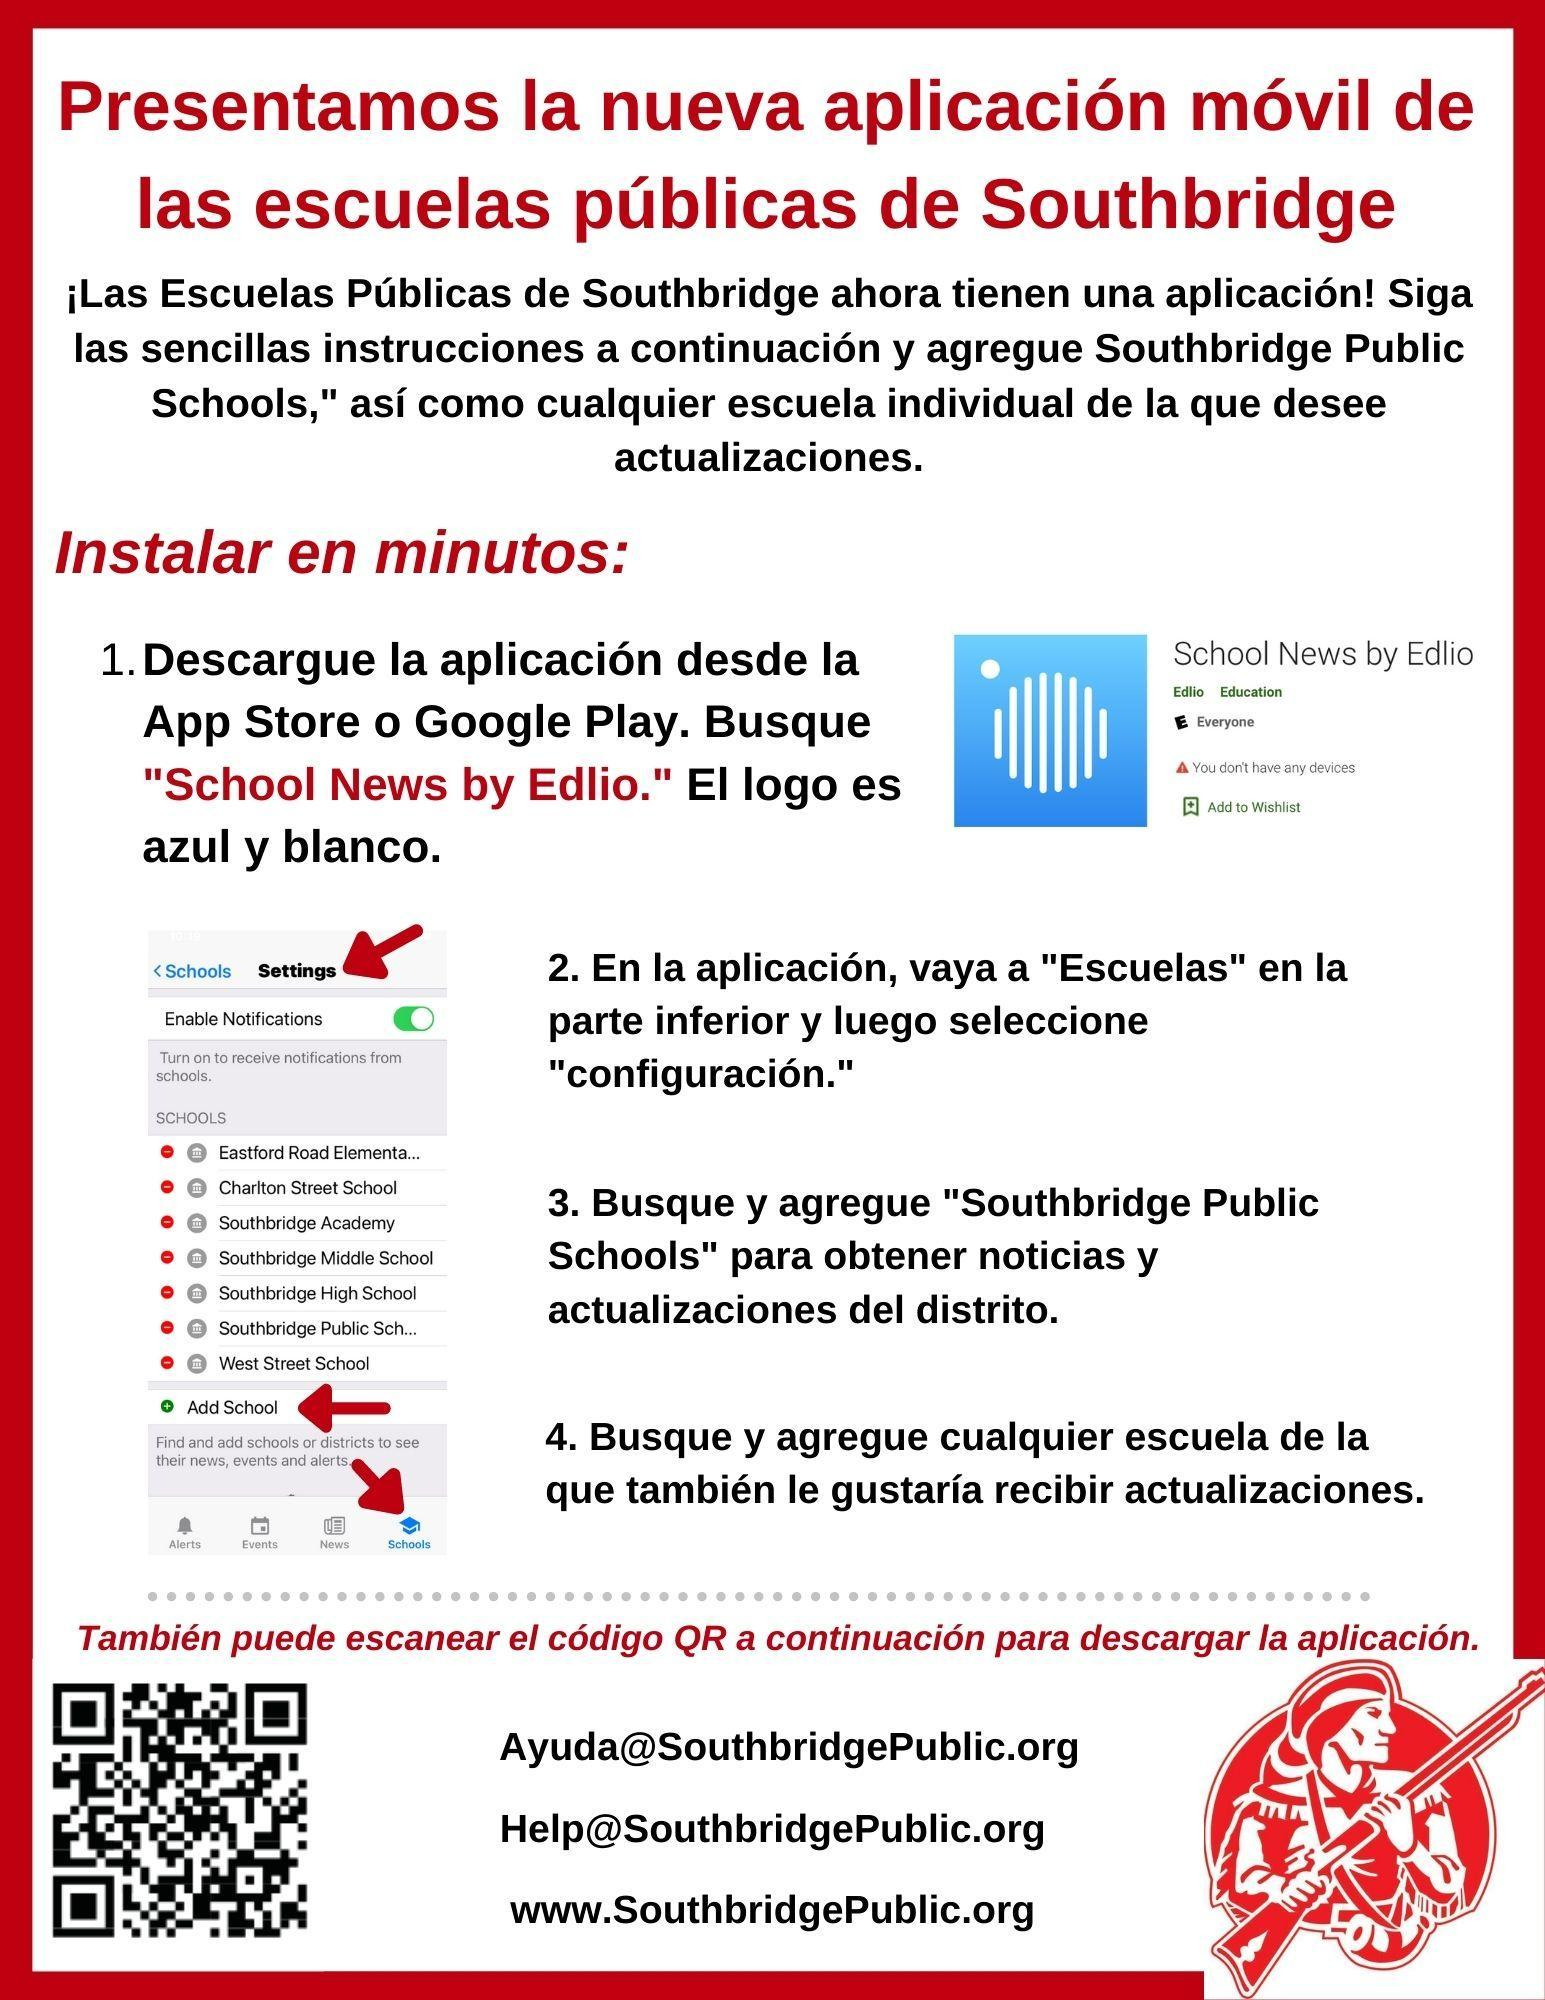 Flyer in Spanish about the Southbridge Public Schools Mobile App.  All information is also in the text on this page.